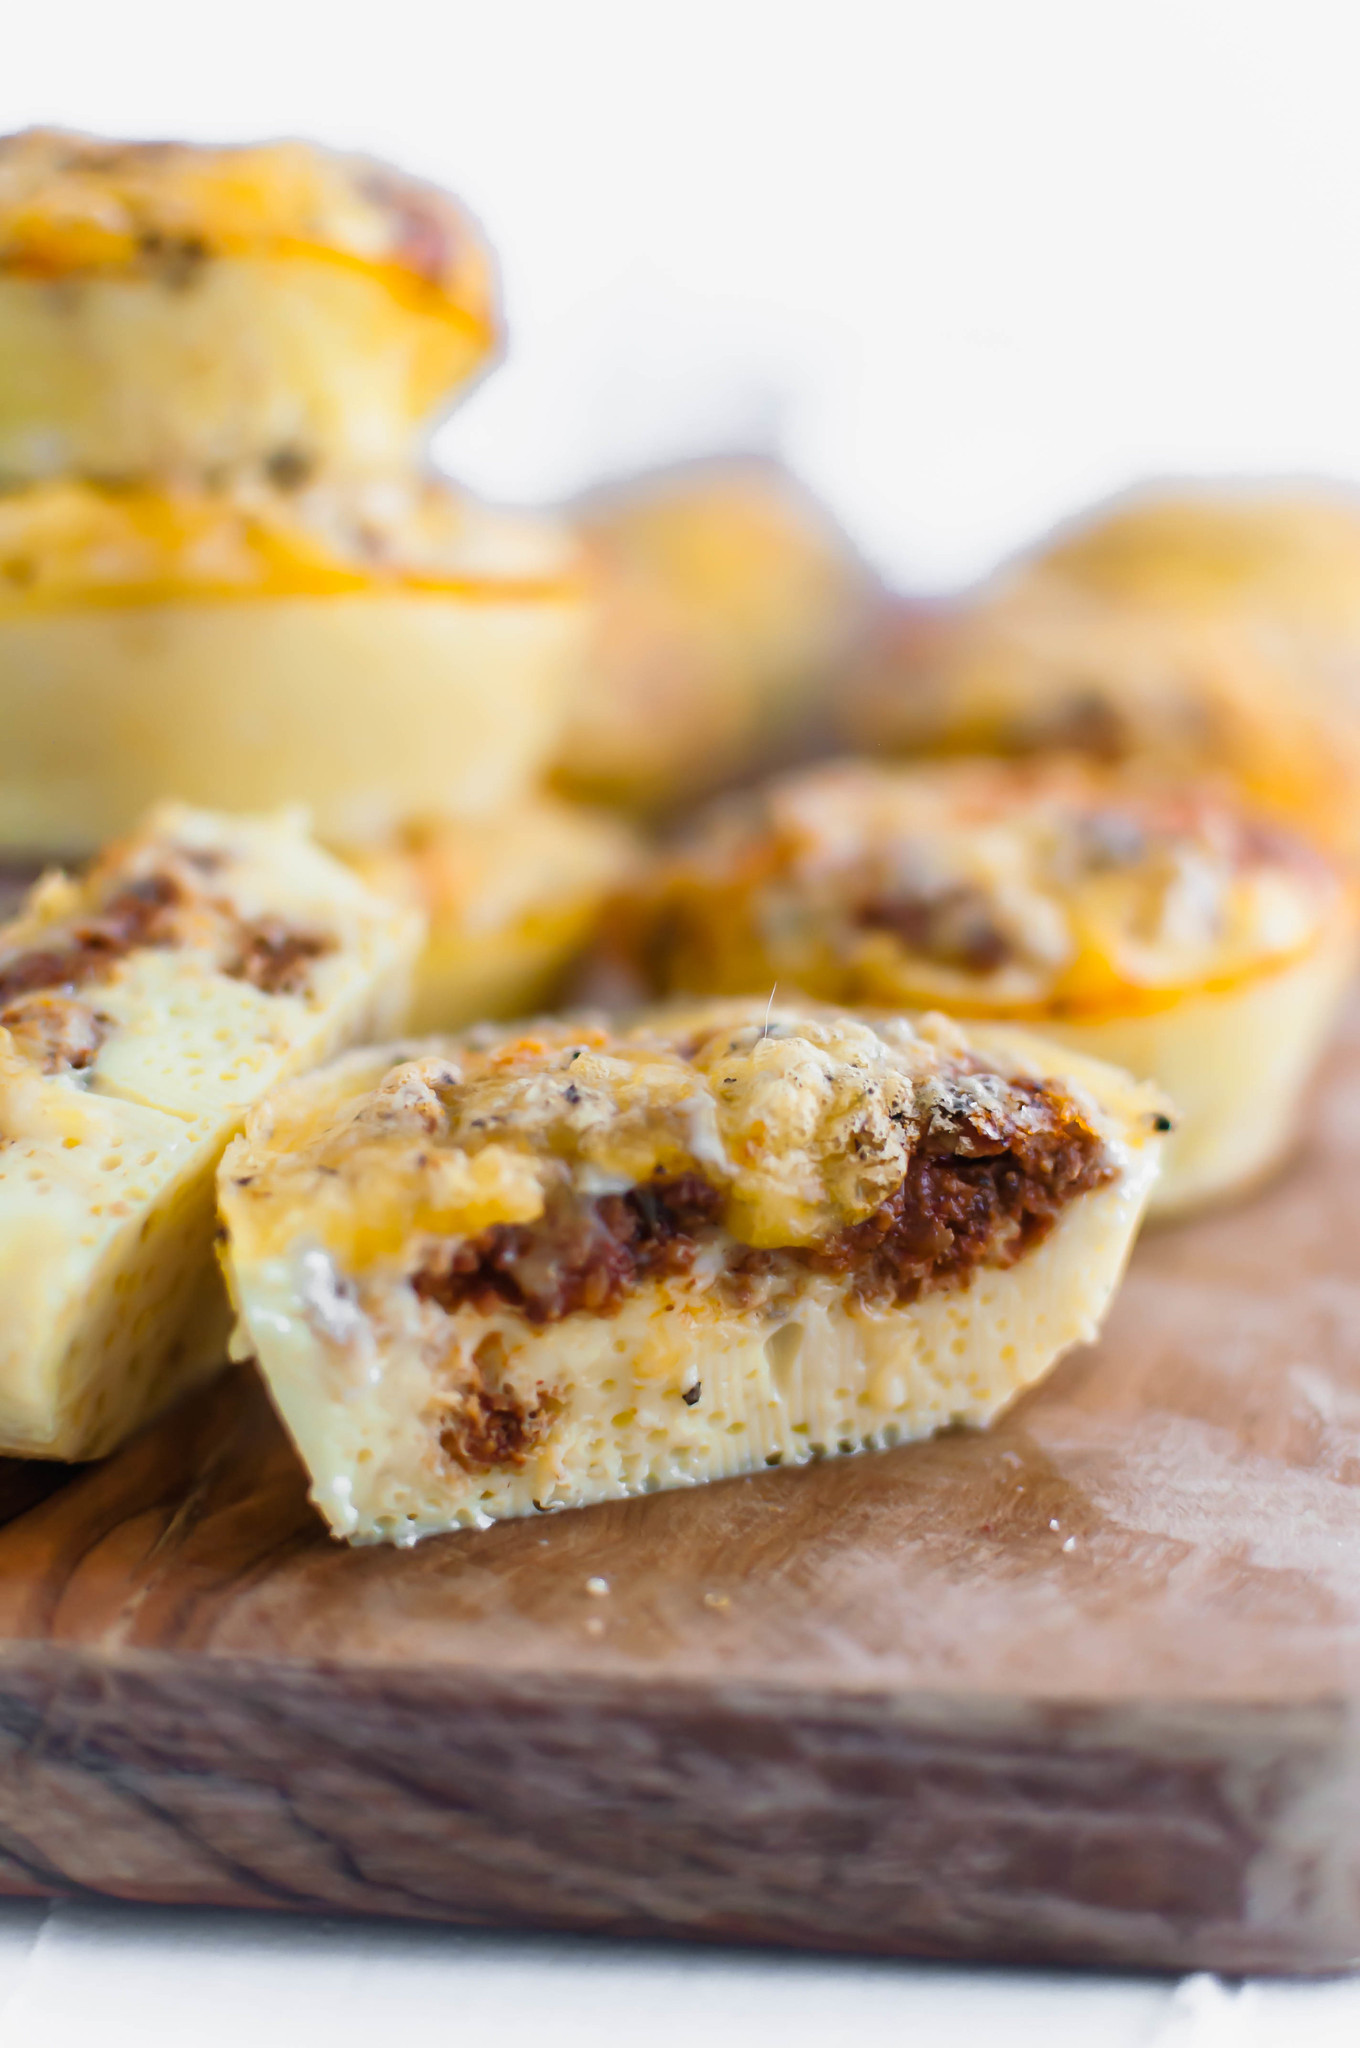 With back to school on the horizon, let's start gathering all the easy breakfast ideas. One of our favorites are these Egg Muffins with Chorizo and Cheddar Cheese. Great for making ahead and freezable too.